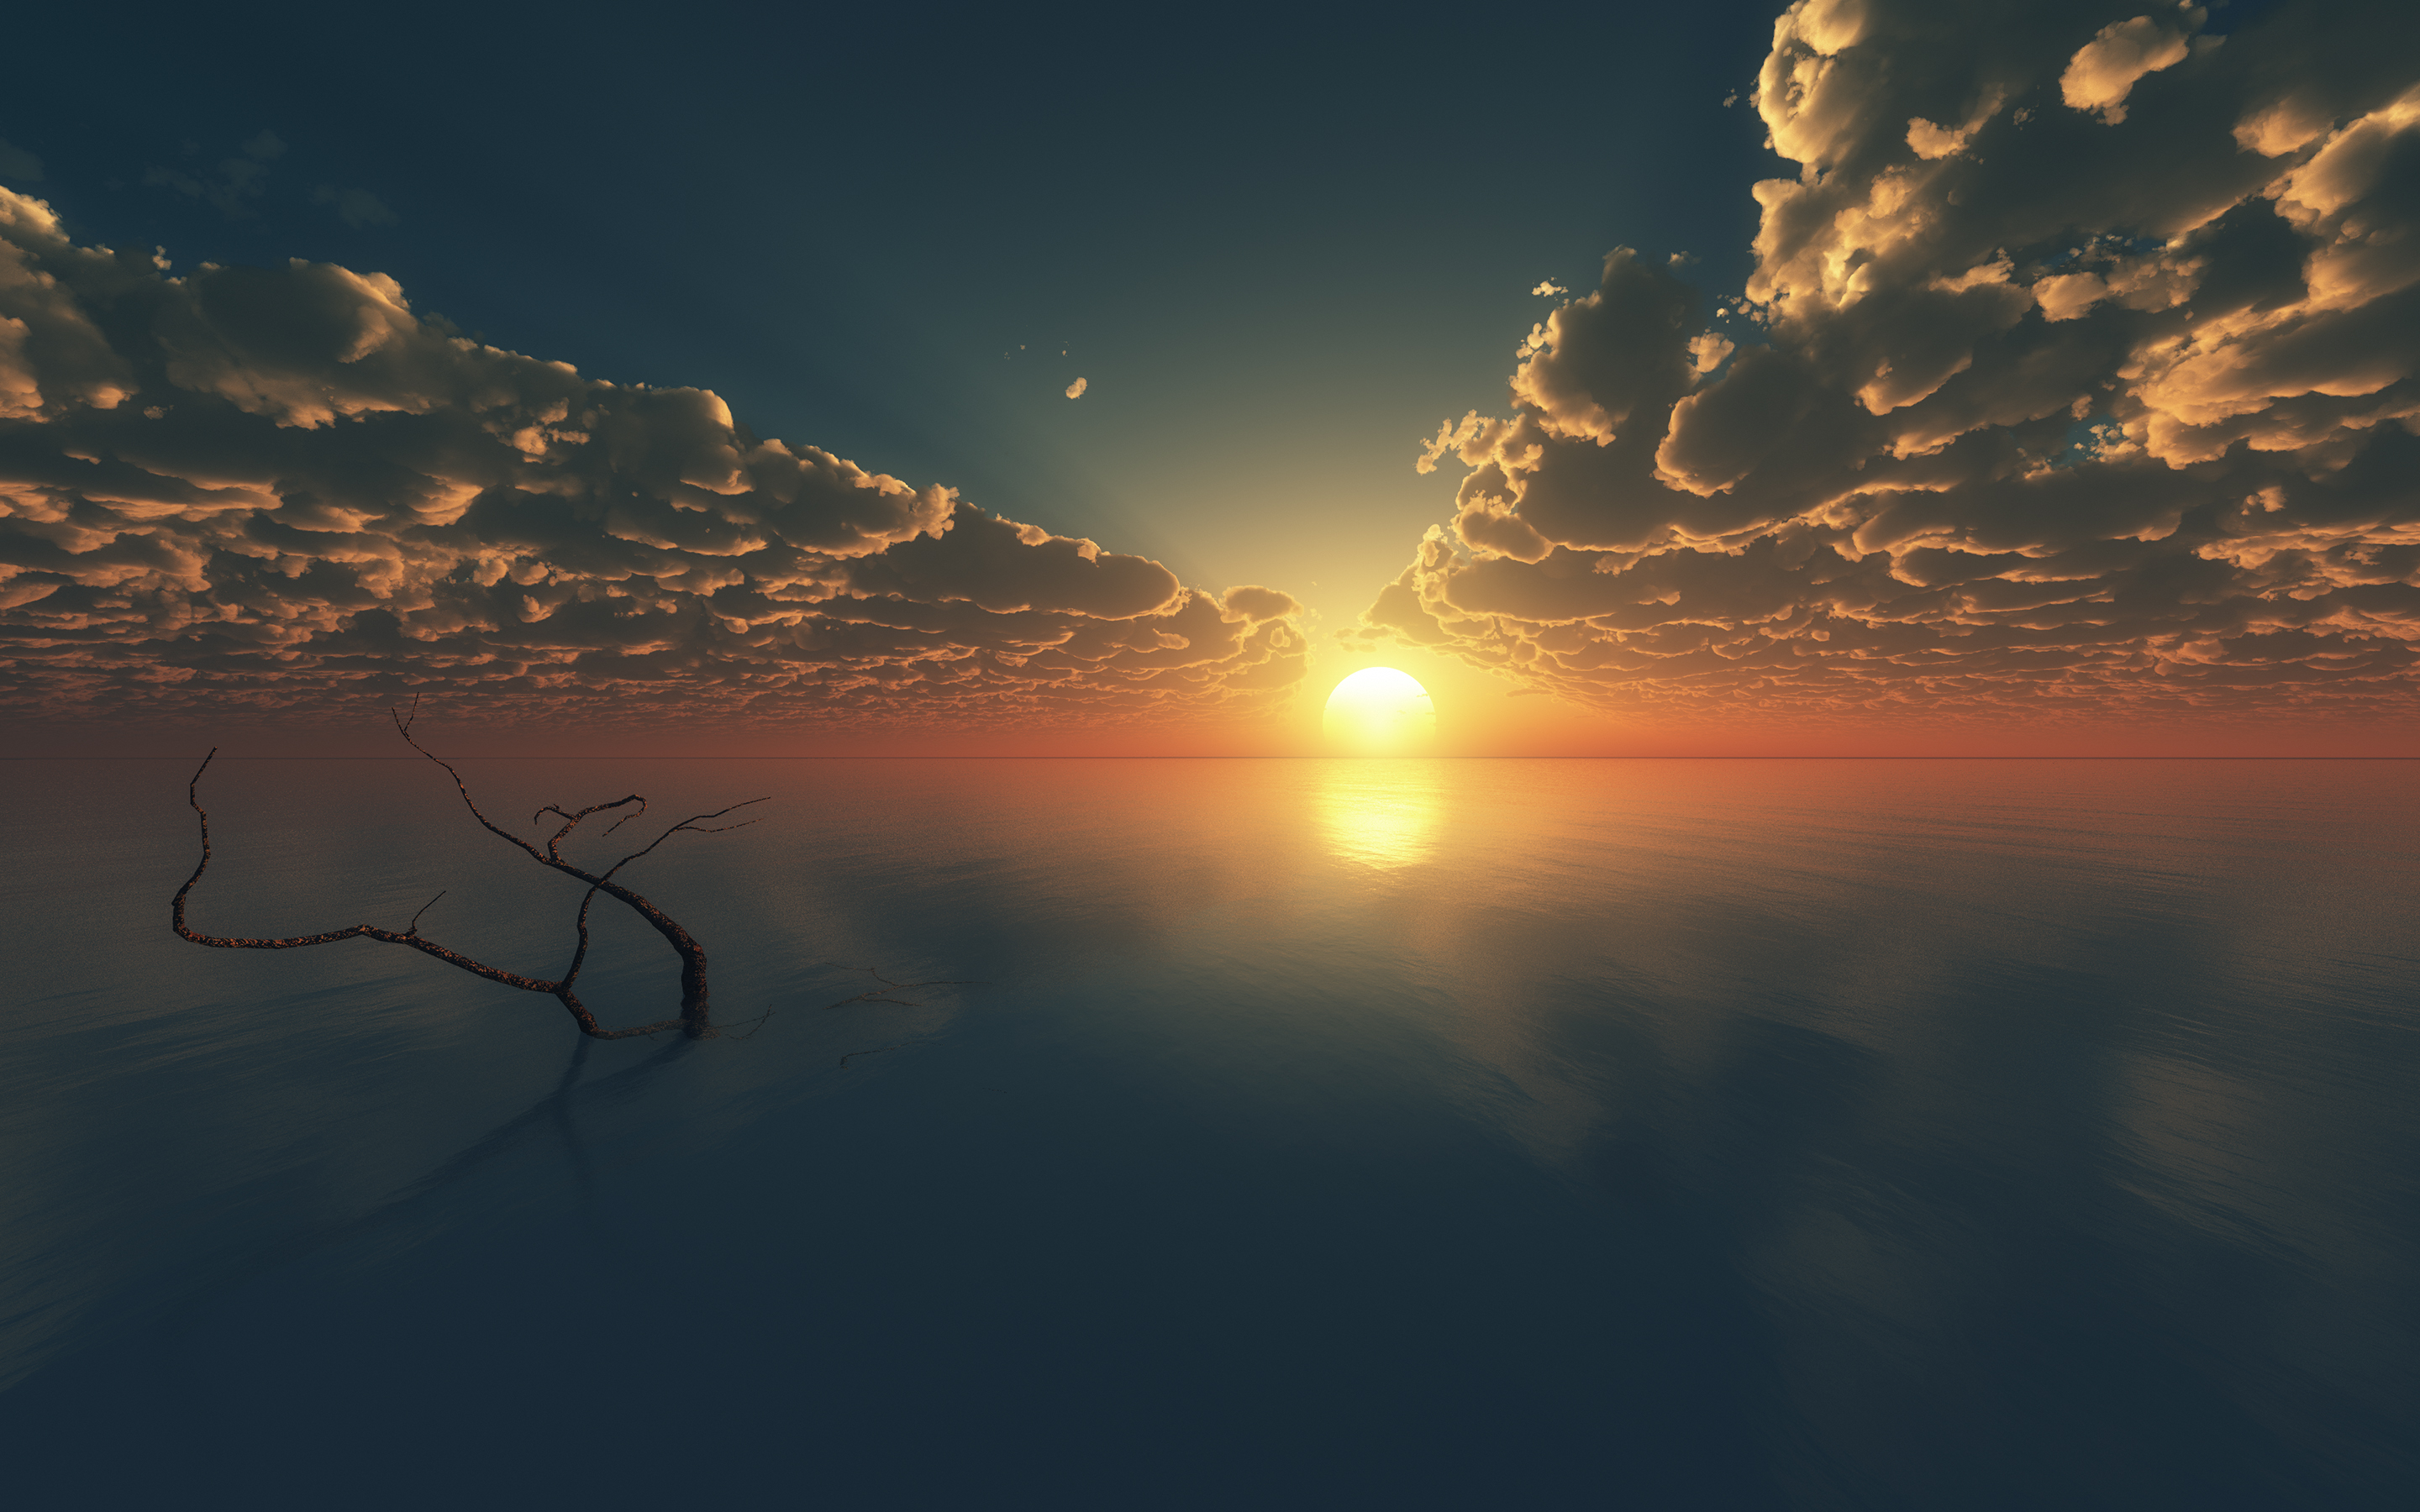 природа горизонт море облака закат небо nature horizon sea clouds sunset the sky без смс